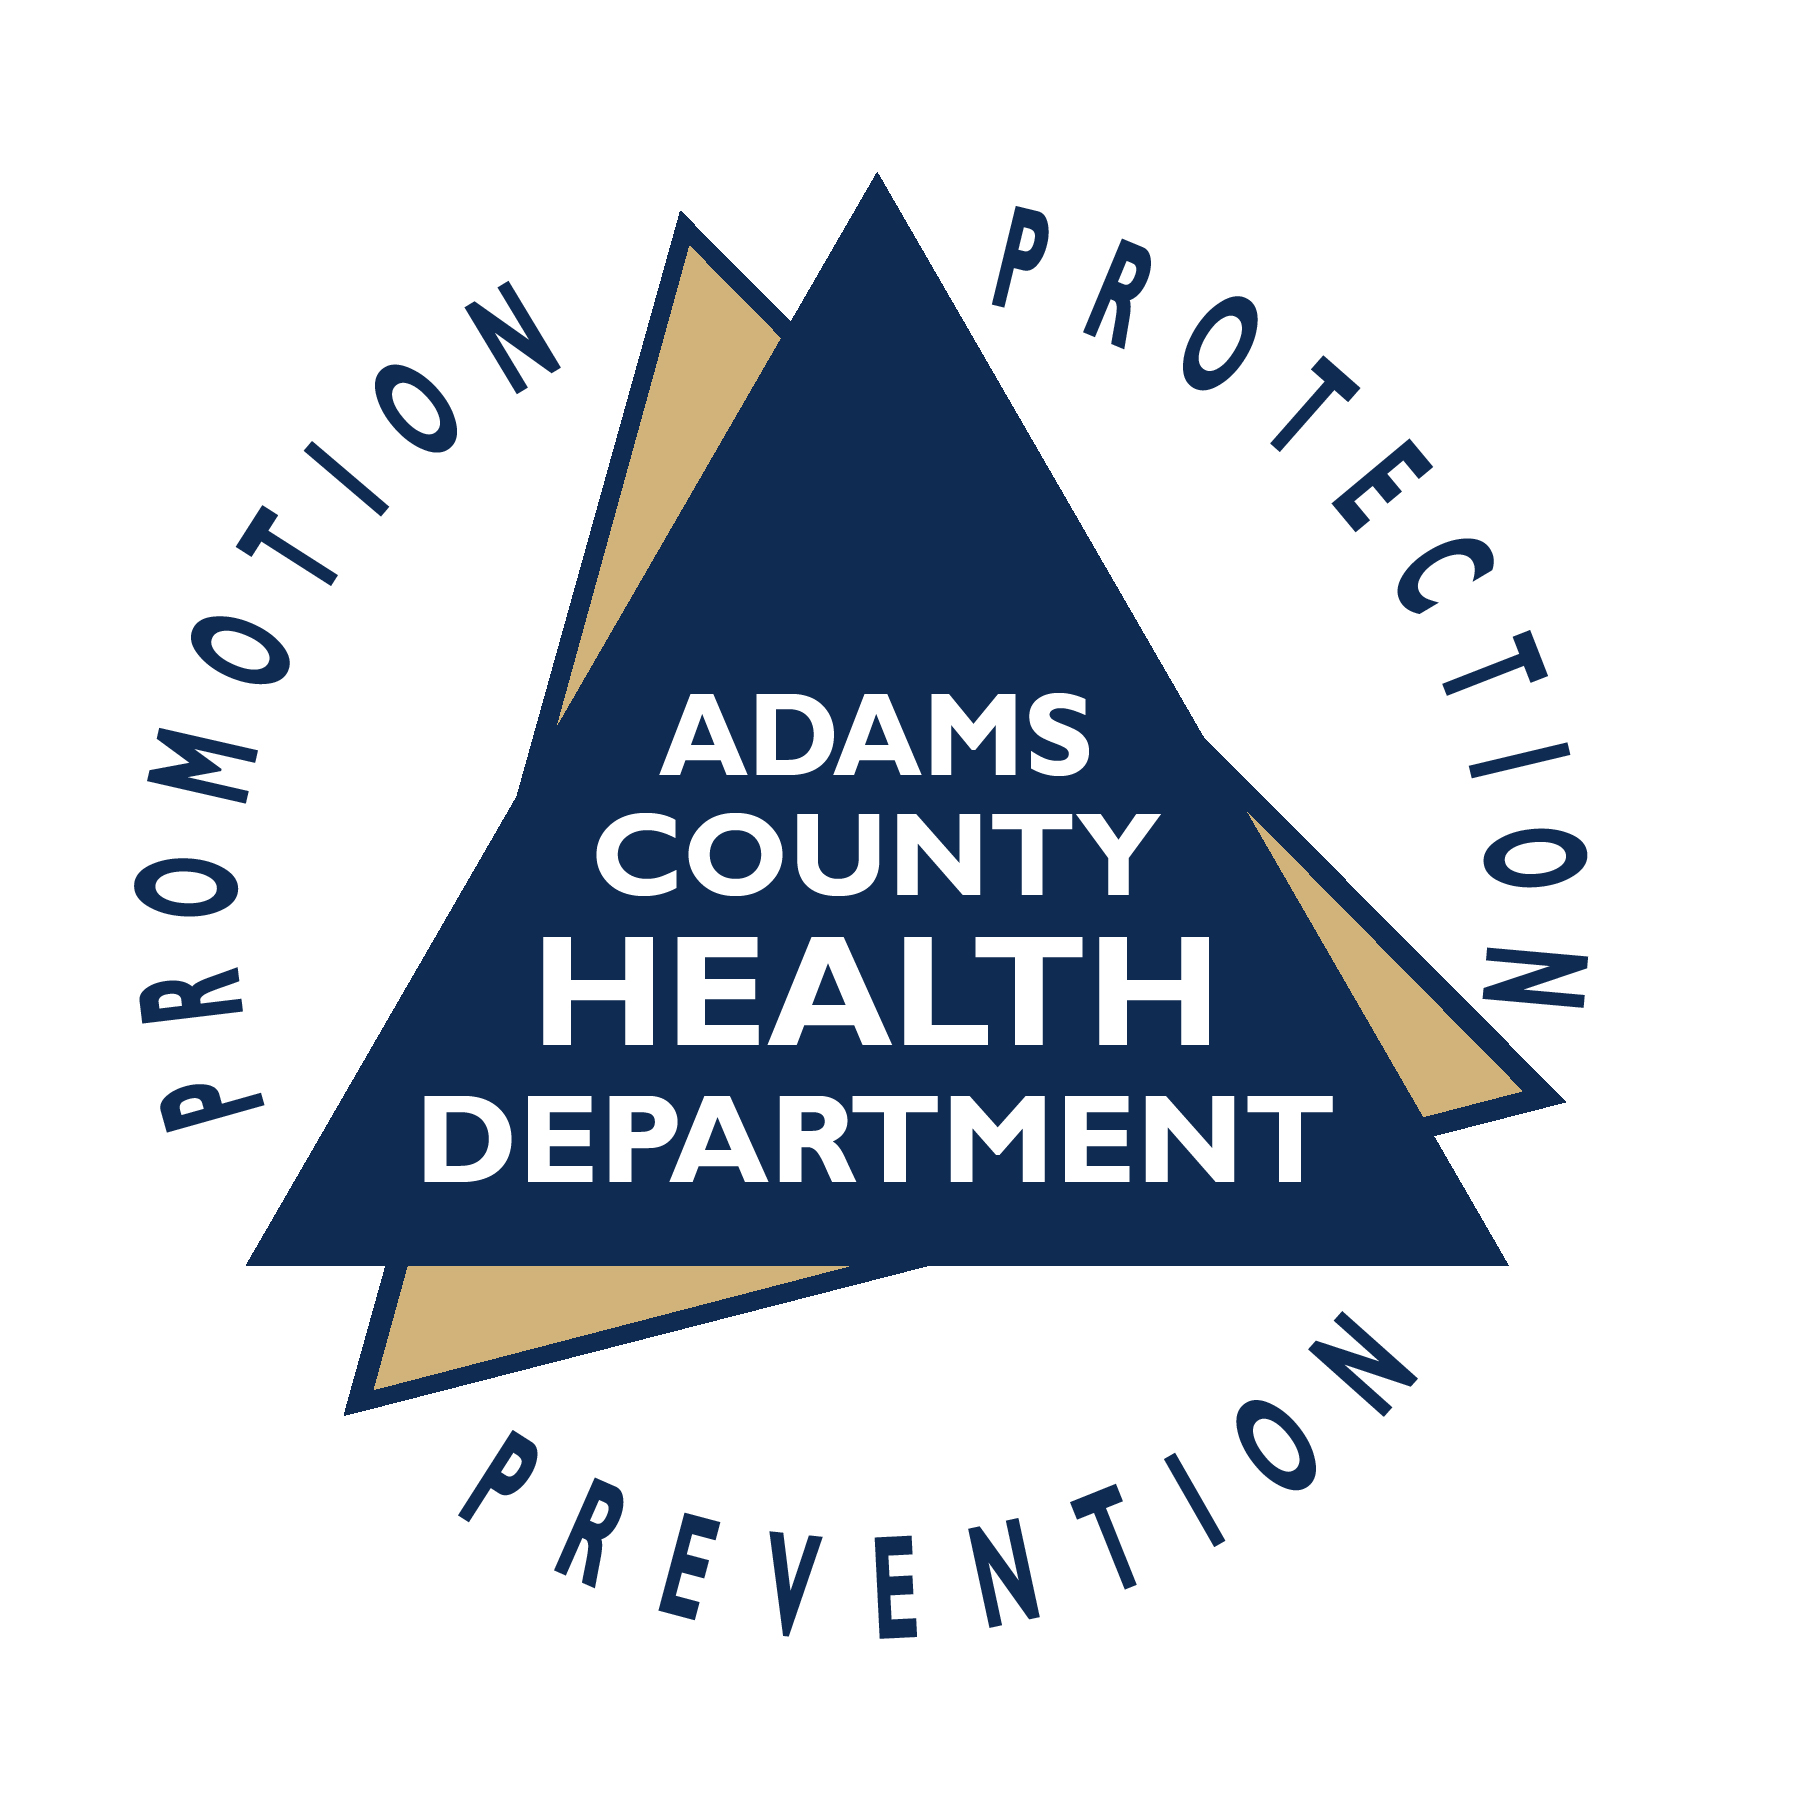 Adams County Health Department Logo